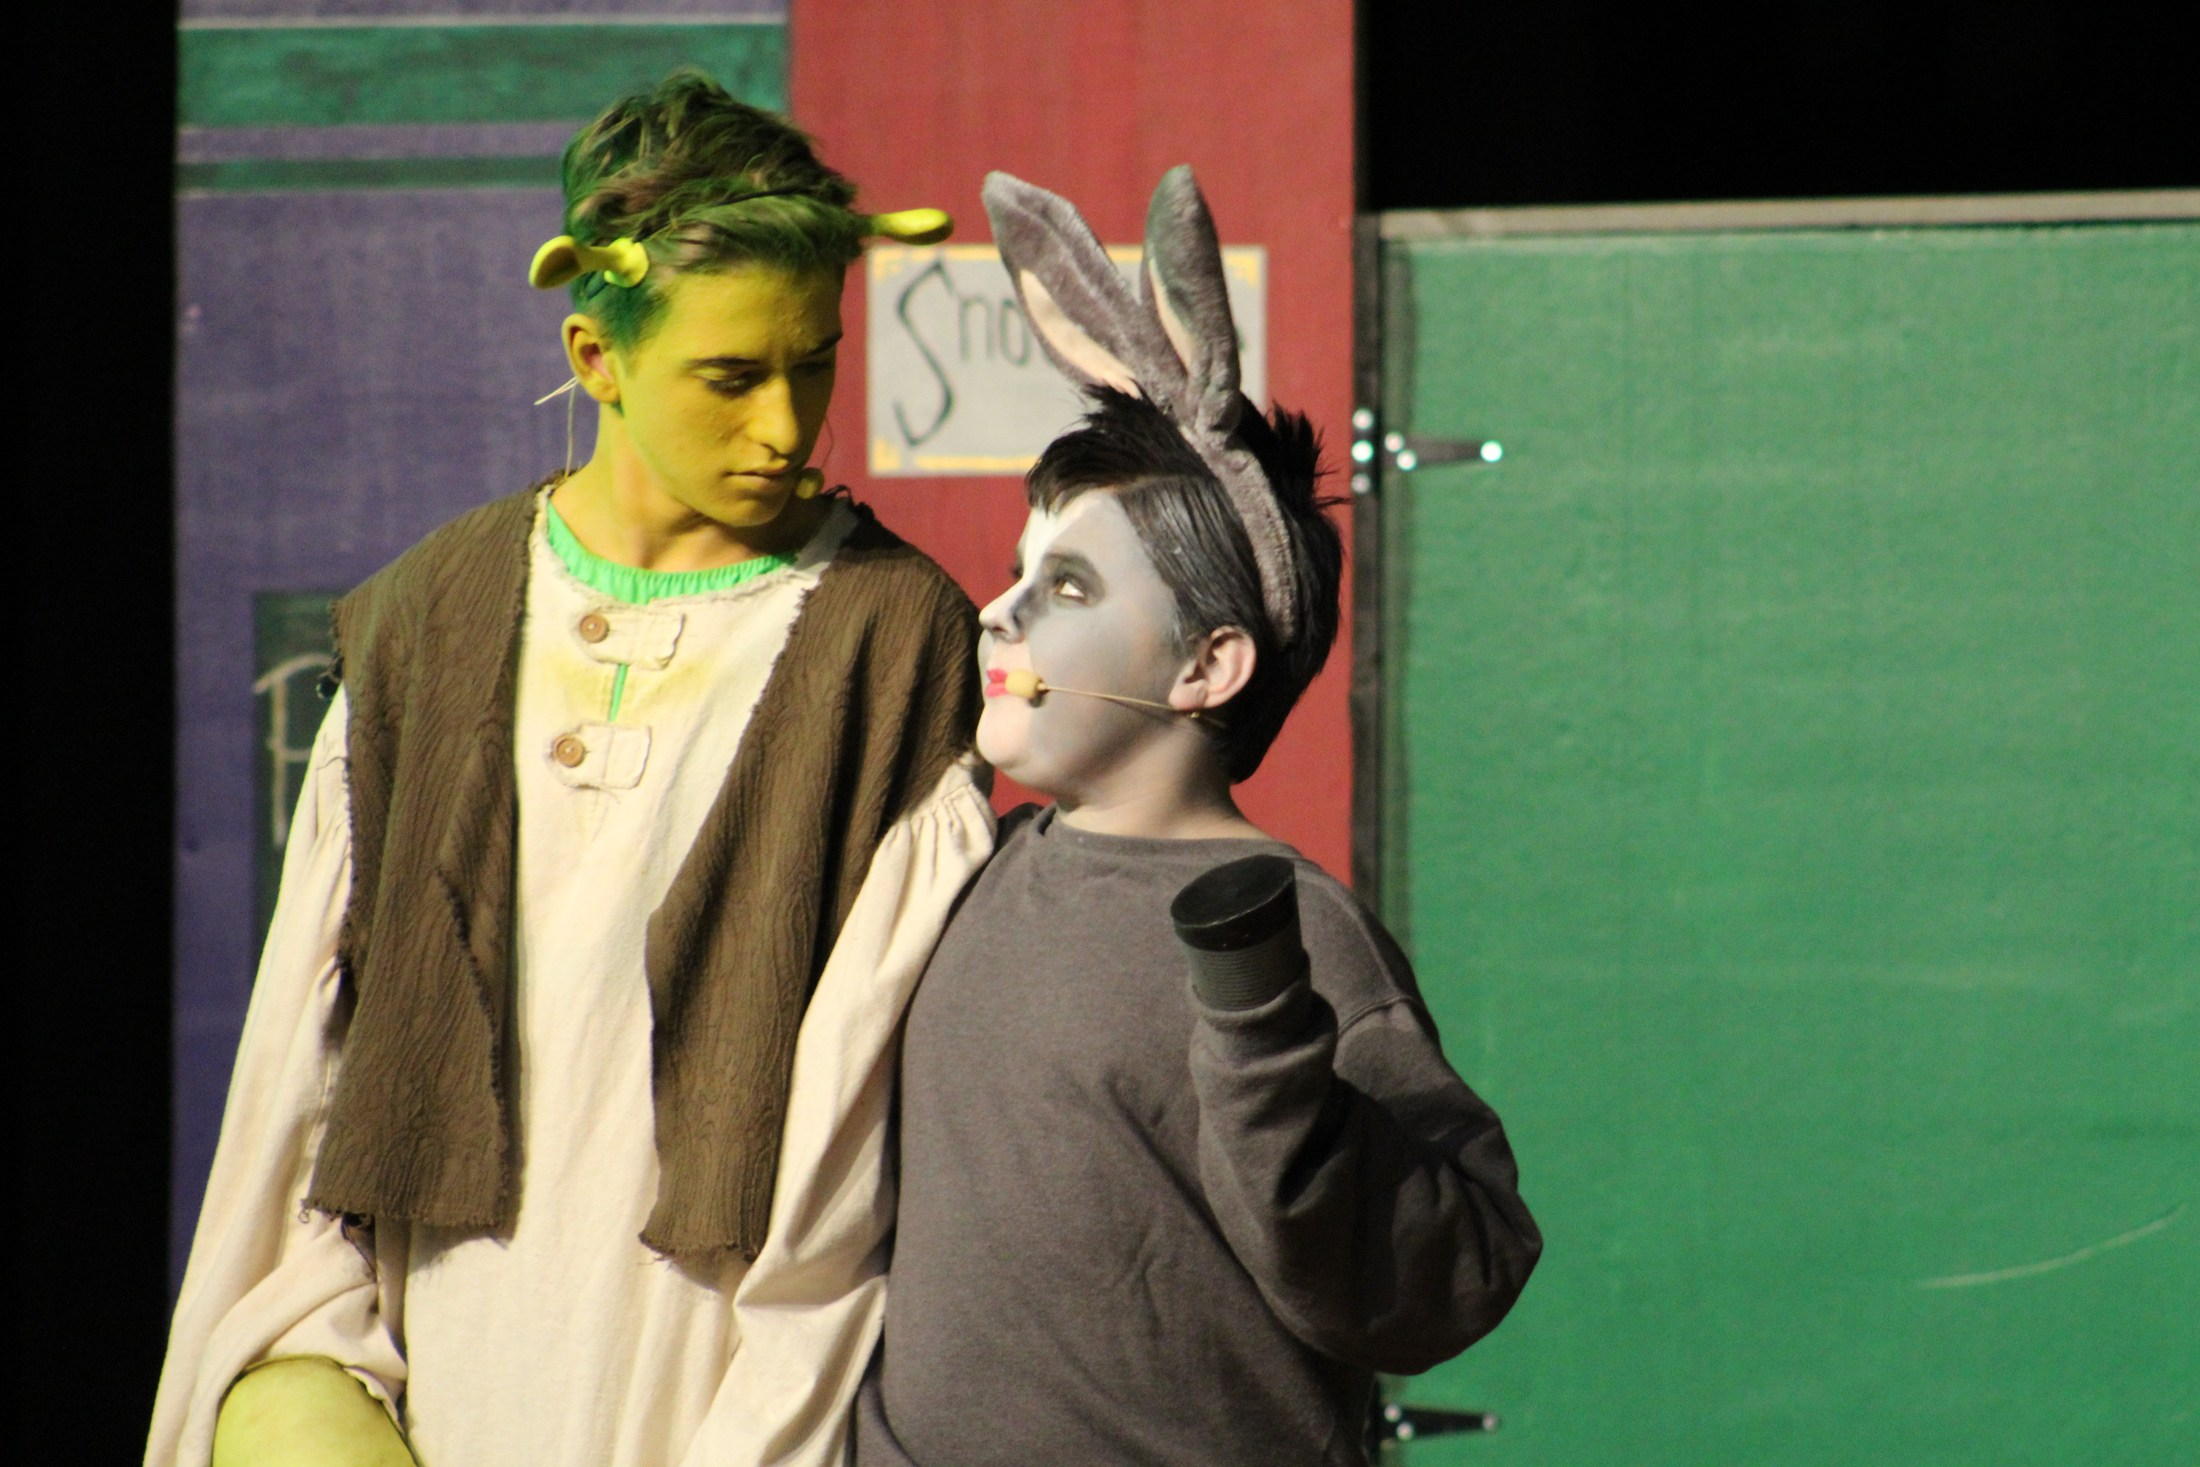 Students in Shrek The Musical